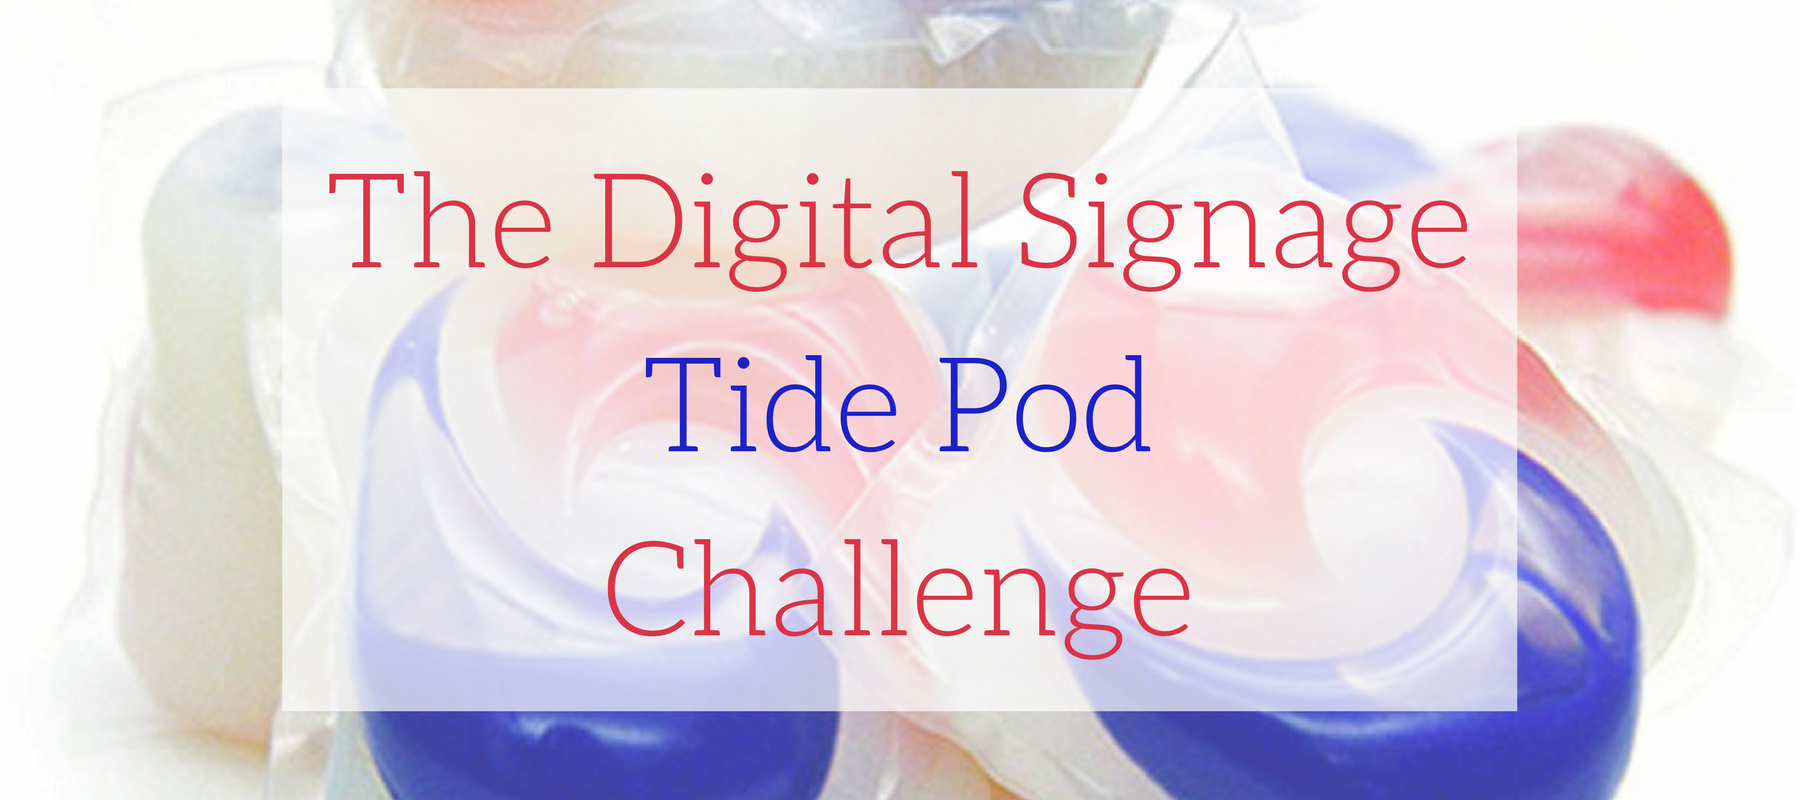 The Digital Signage Tide Pod Challenge-1